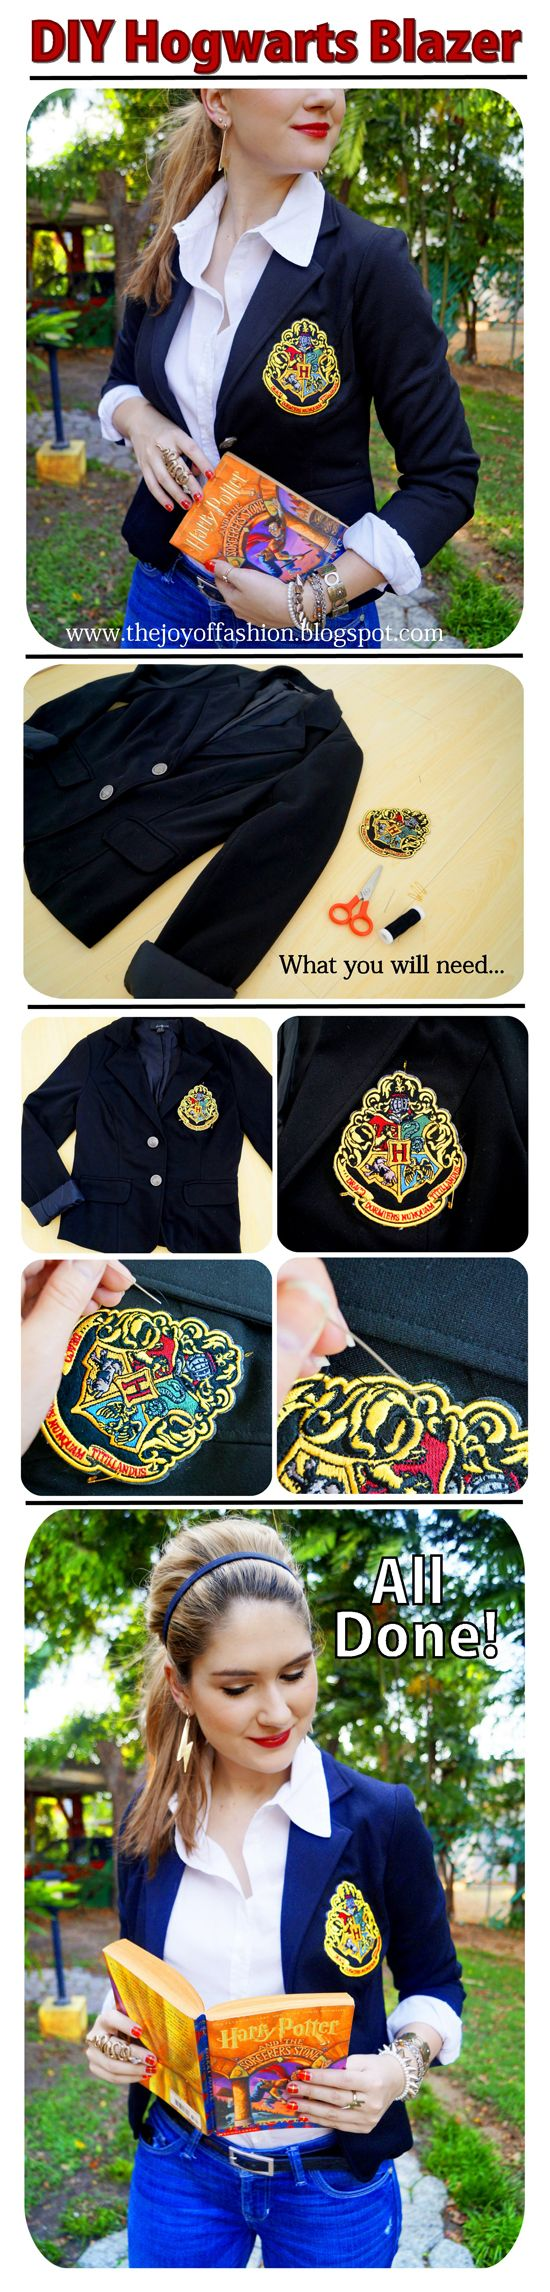 Whether you want to be inRavenclaw or Slytherin, Hufflepuff or Gryffindor,call your wizarding friends & lets go for a trip in Harry Potter's World! '|My Wand |'will give you …